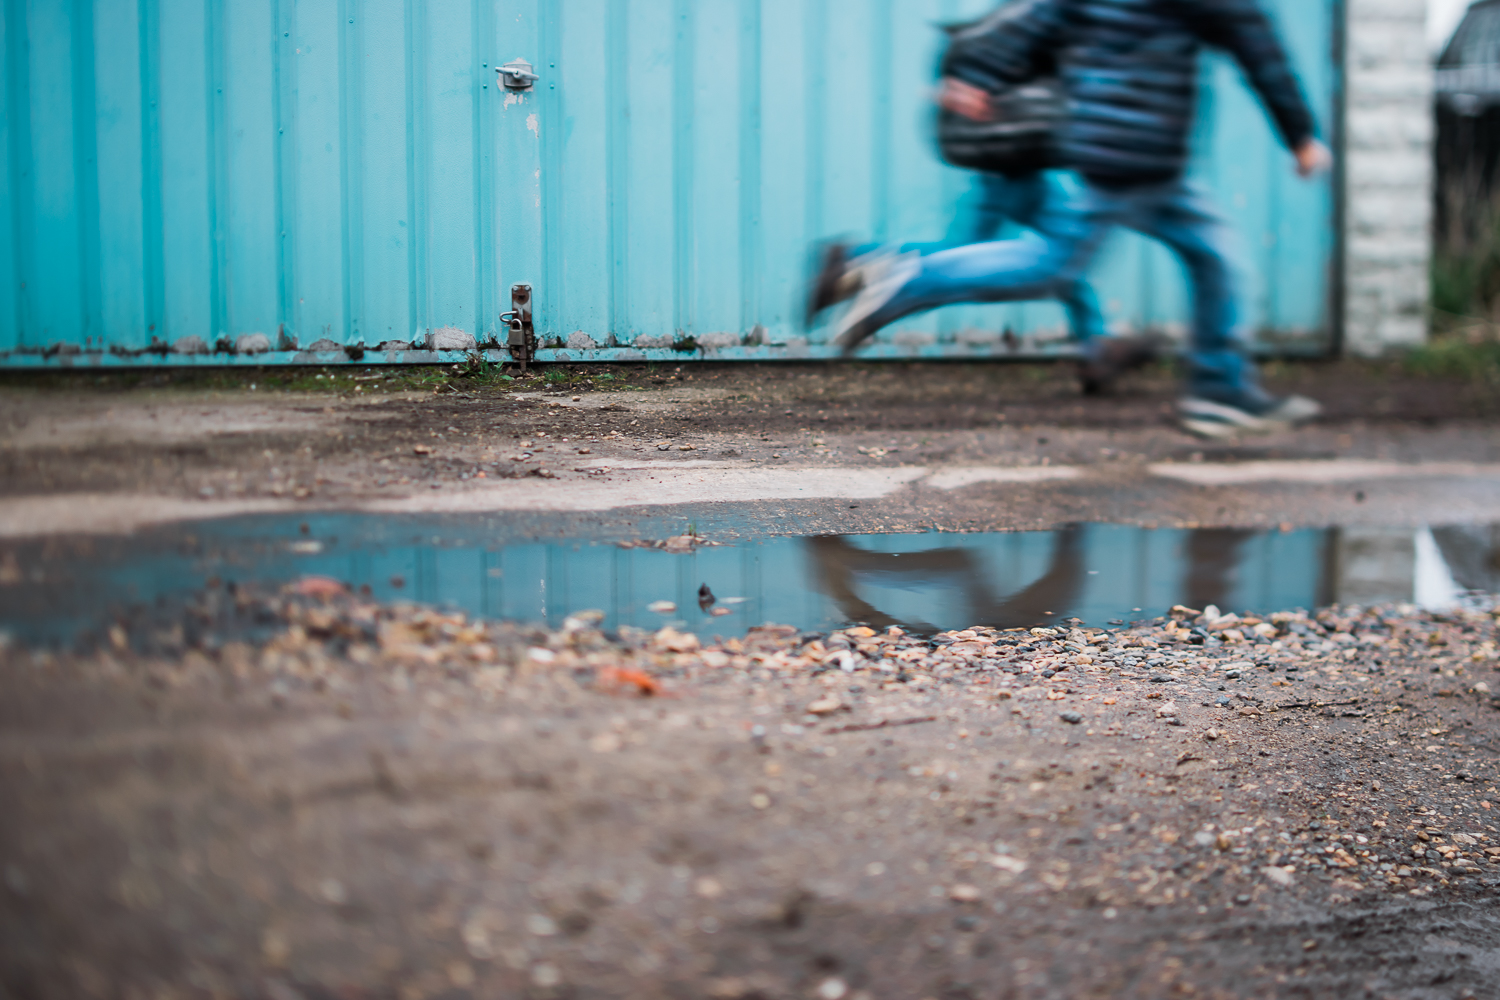 Freelensed photograph of boys running and their reflection blue